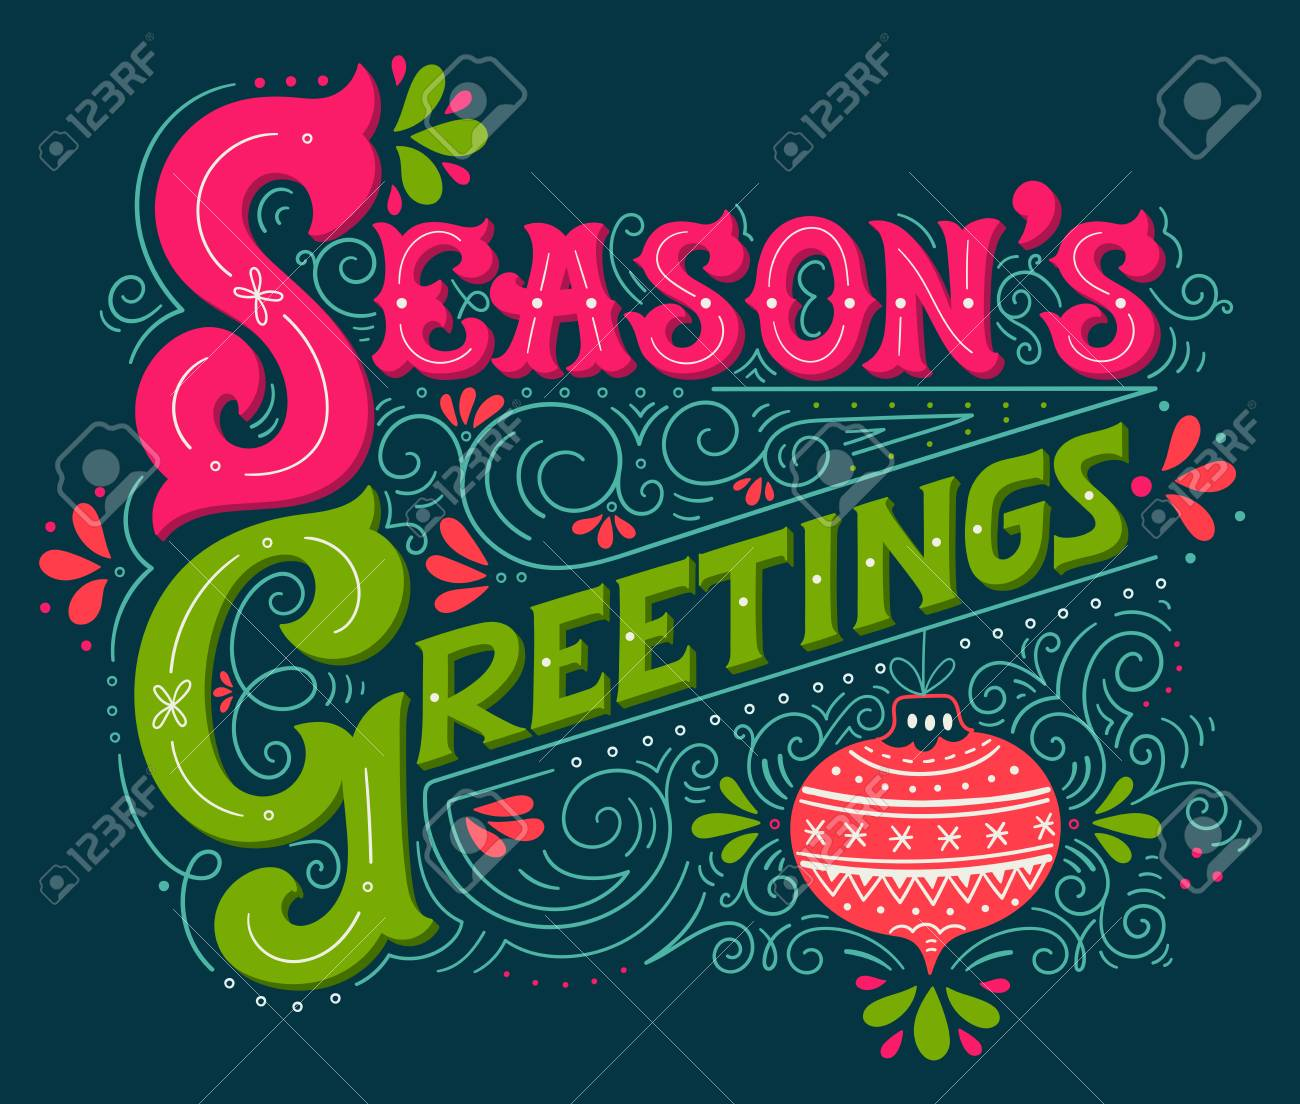 Seasons greetings hand drawn winter holiday illustration seasons greetings hand drawn winter holiday illustration lettering with a christmas ball and decorative kristyandbryce Image collections